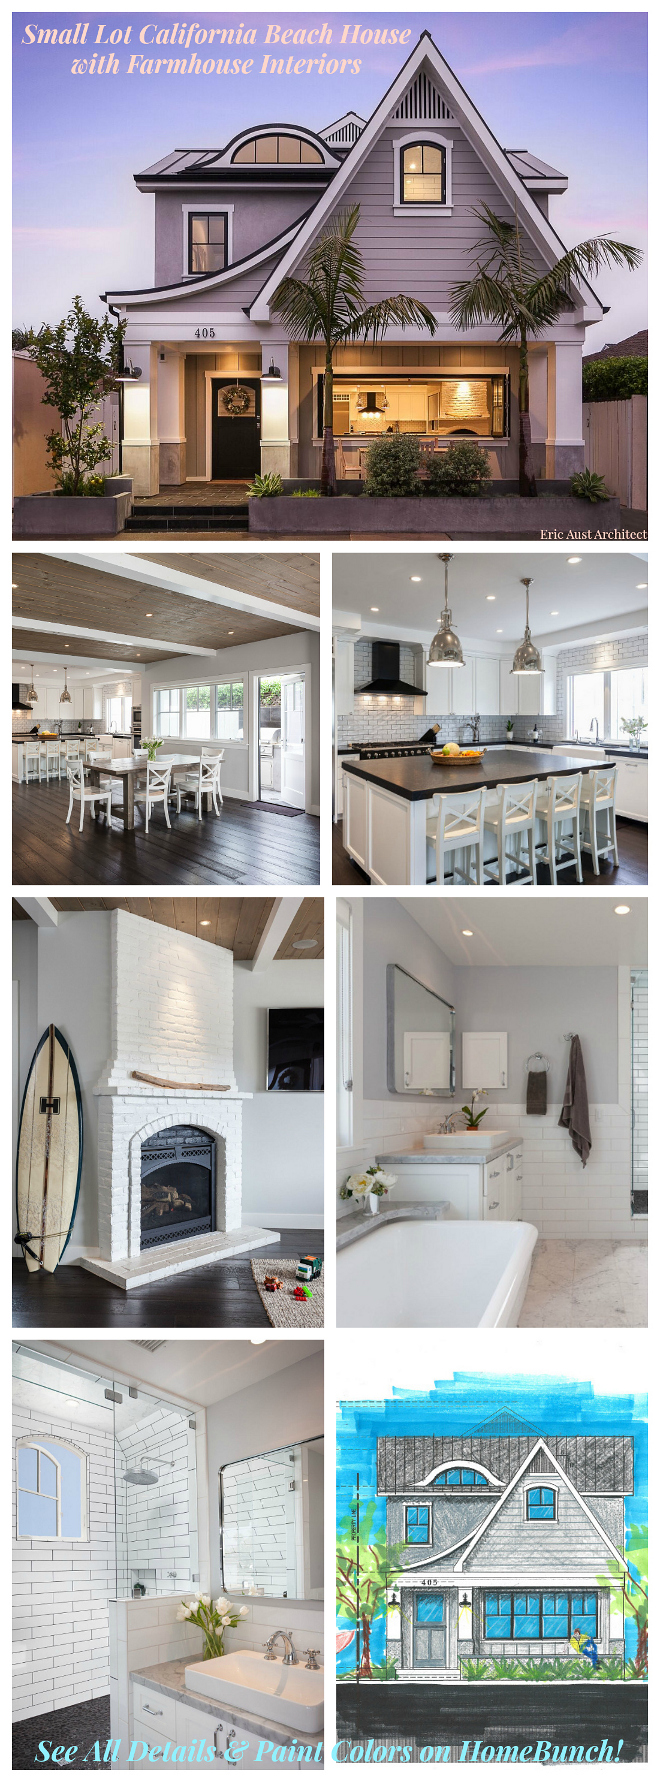 Small Lot California Beach House with Farmhouse Interiors